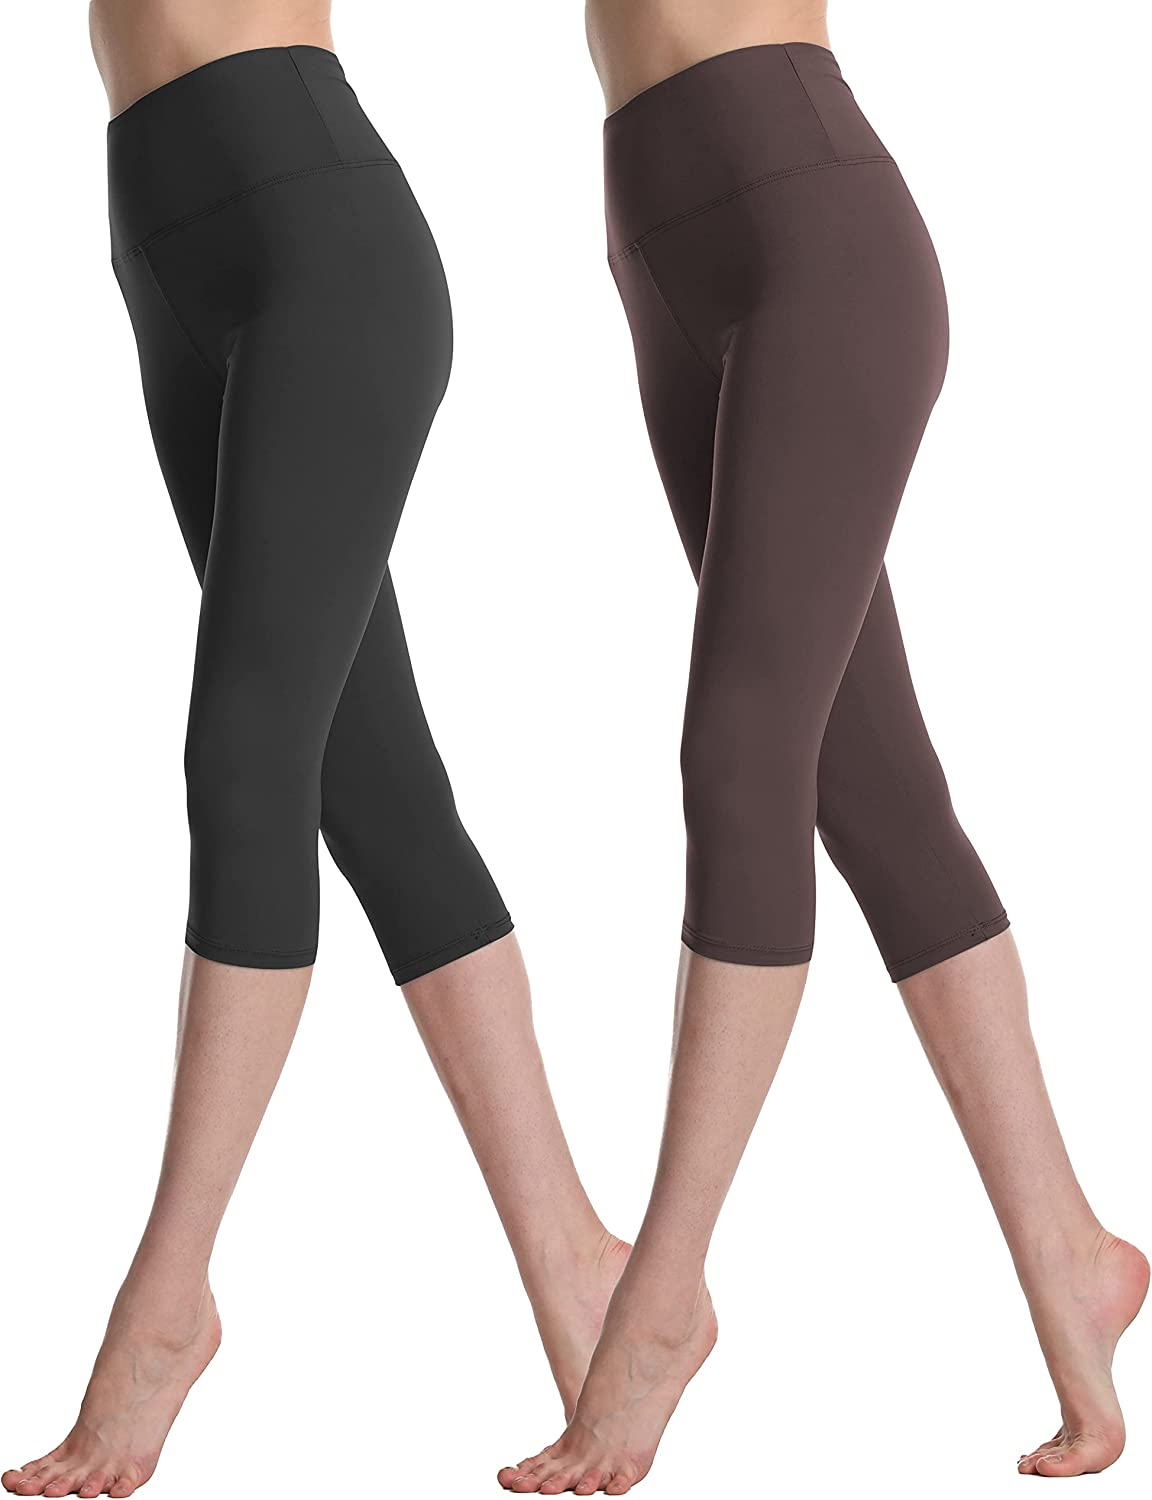 Zioccie High Waisted Capri Leggings for Women- Soft Opaque Slim Tummy Control Yoga Pants for Workout Running (2 Pack Black,Coffee, Plus Size)